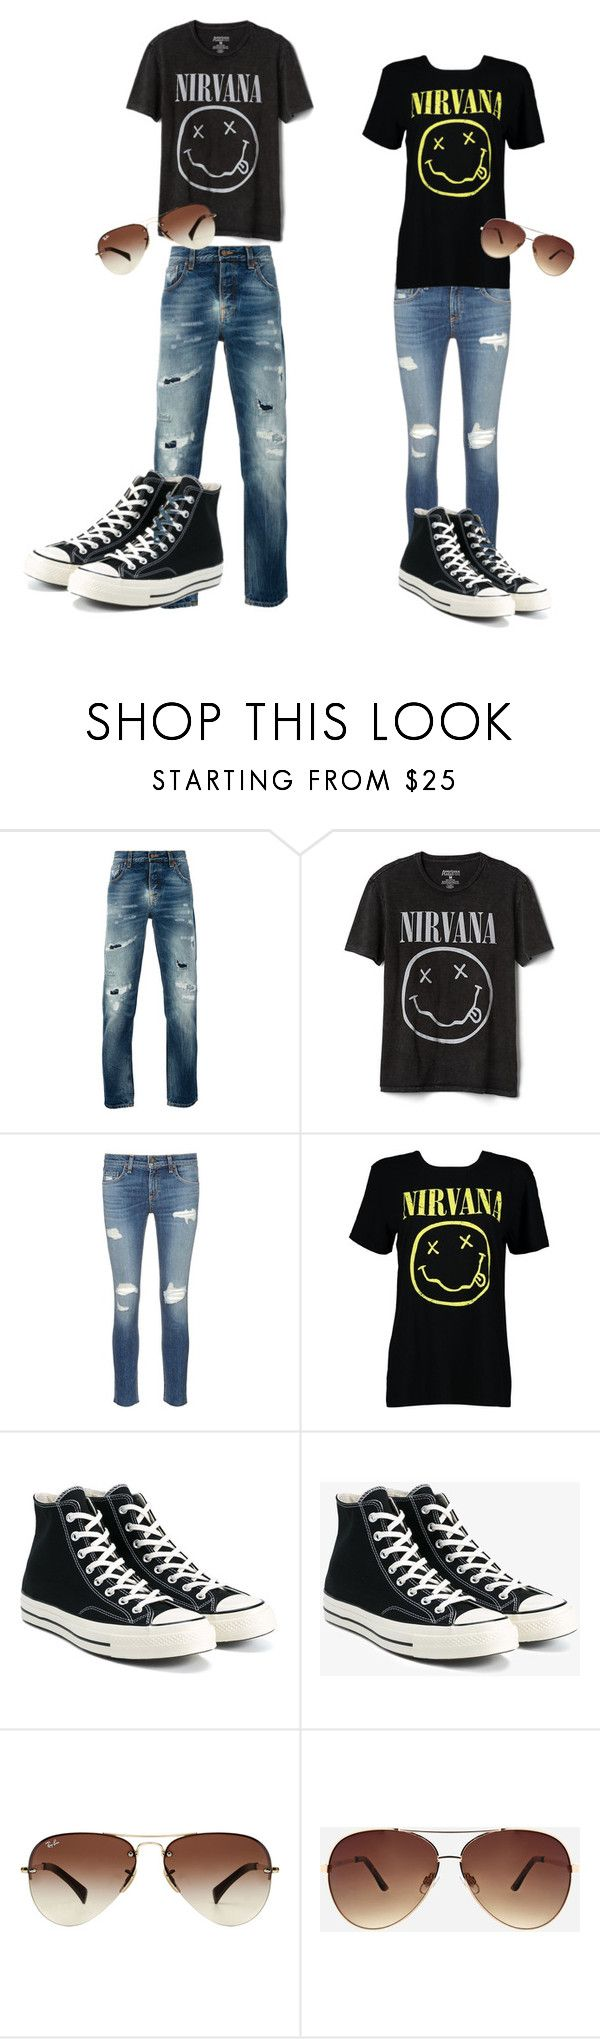 """Untitled #19"" by jaca757 ❤ liked on Polyvore featuring Nudie Jeans Co., Gap, rag & bone/JEAN, Boohoo, Converse, Ray-Ban and Ashley Stewart"